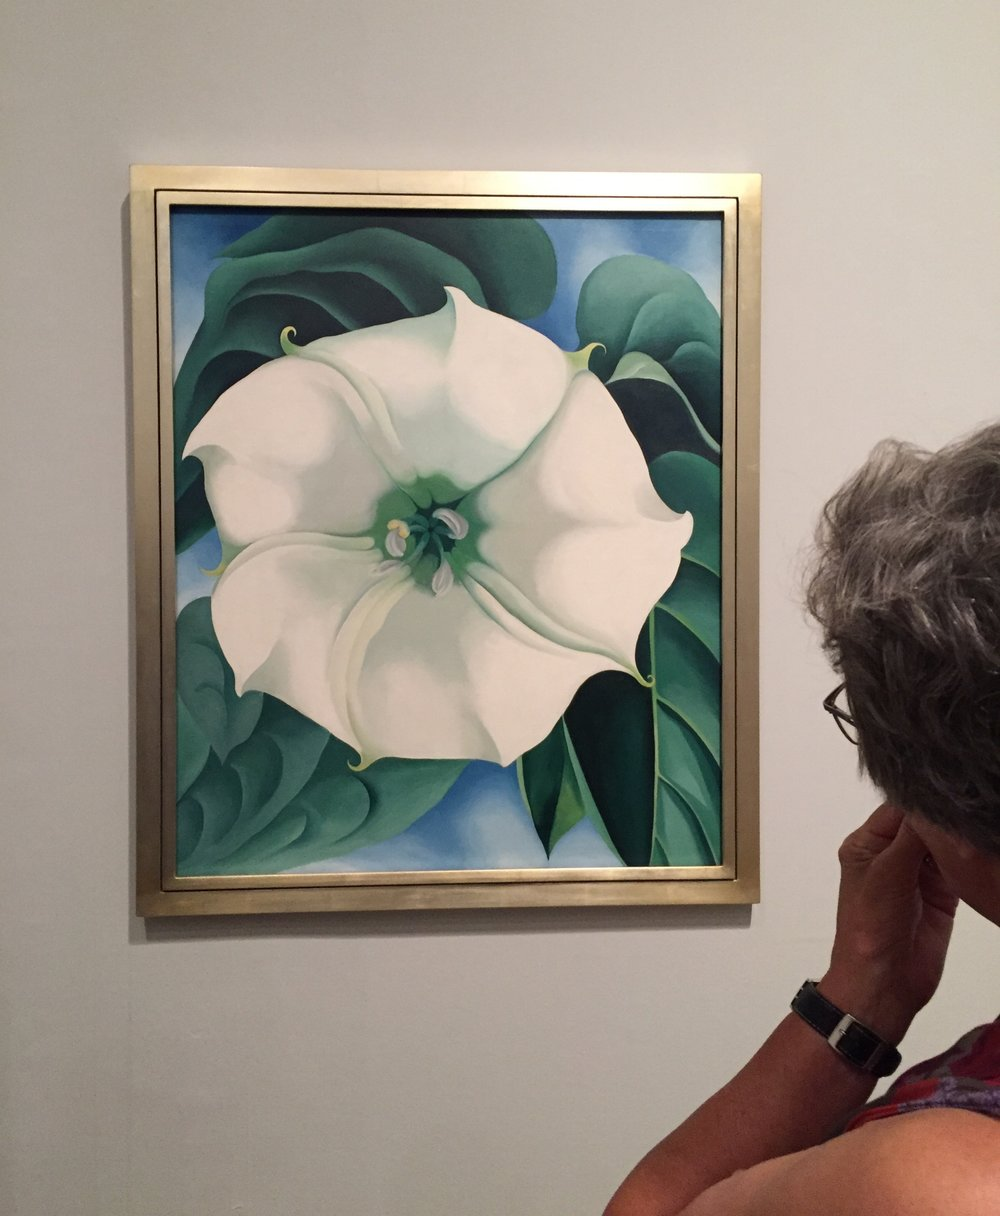 A visitor contemplates the most expensive work of art ever made by a woman;  Jimson Weed/White Flower No. 1 , Georgia O'Keeffe, 1932 sold at auction for $44.4m in November 2014.